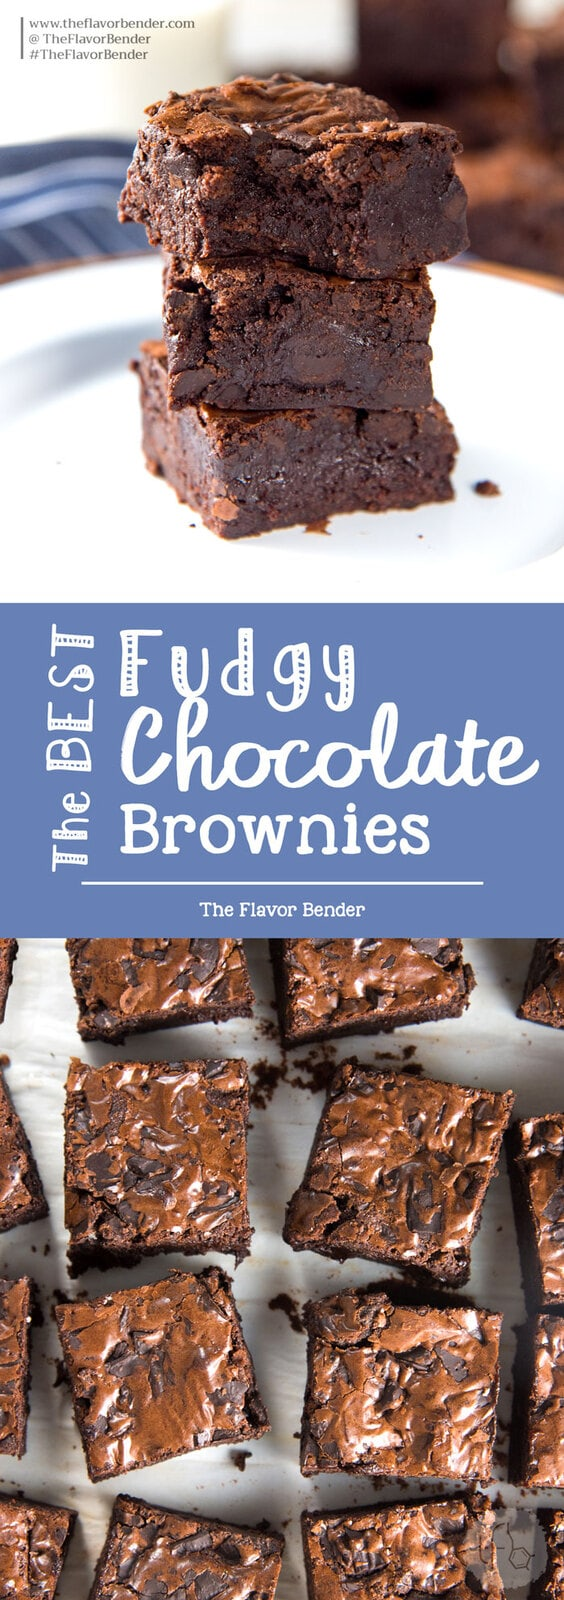 The Best Fudgy Chocolate Brownies - Fudgy brownies made with cocoa powder with chunks of real chocolate! With detailed tips on how to make perfect fudgy cocoa brownies everytime. #ChocolateBrownies #CocoaBrownies #FudgyBrownies #ChewyBrownies